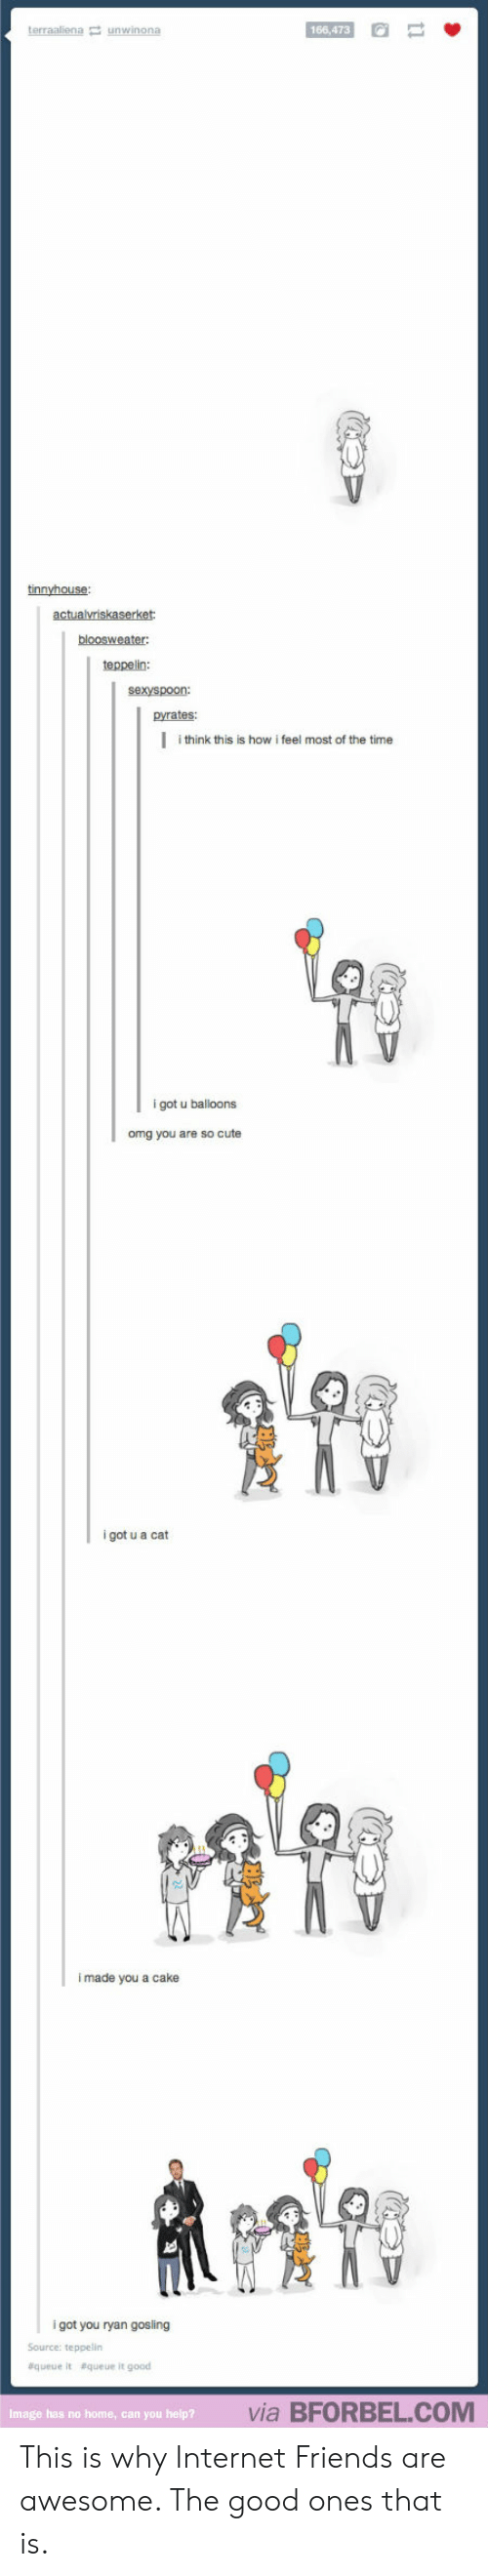 Cute, Friends, and Internet: 166,473  tinnyhouse  teppelin:  sexyspoon:  pyrates:  l  i think this is how i feel most of the time  got u balloons  omg you are so cute  i got u a cat  i made you a cake  康?  i got you ryan gosling  Source: teppelin  queue it aqueue it good  via BFORBEL.COM  Image  has no home, can you help? This is why Internet Friends are awesome. The good ones that is.